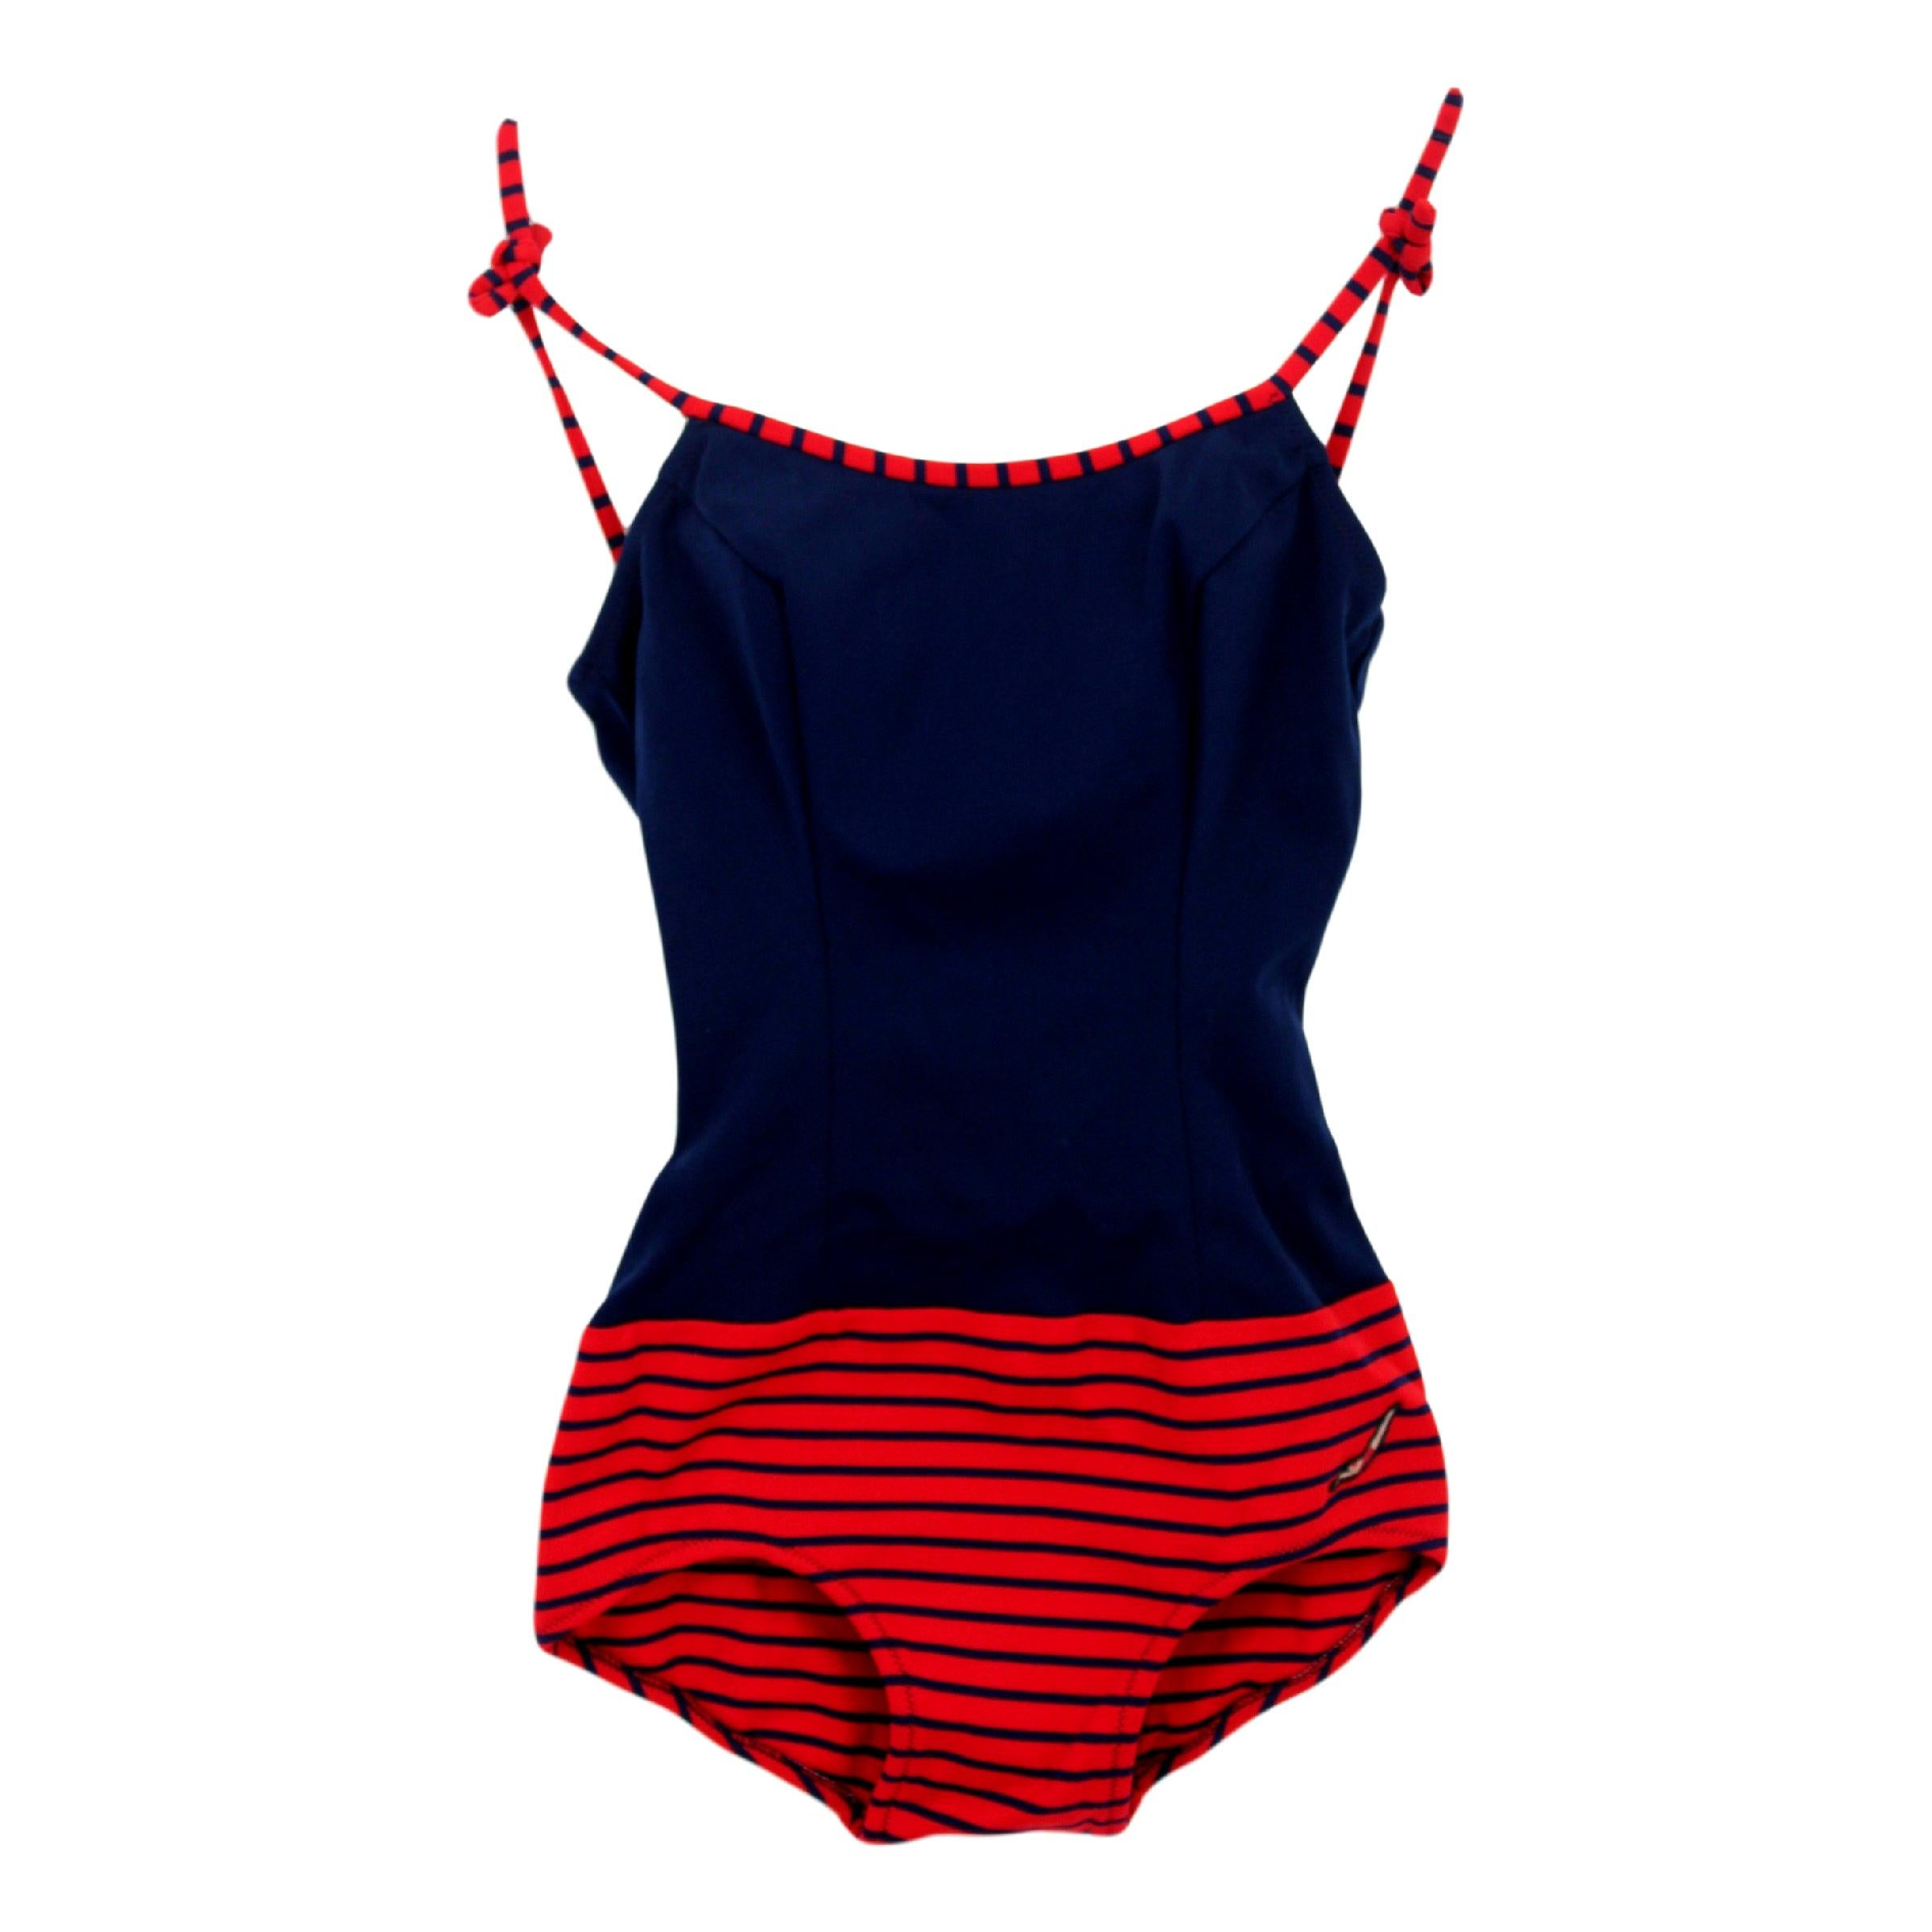 b09dda235b HERMES Swimsuit 2 pieces Bikini Eole Mythiques Phoenix Blue Size 38 For  Sale at 1stdibs